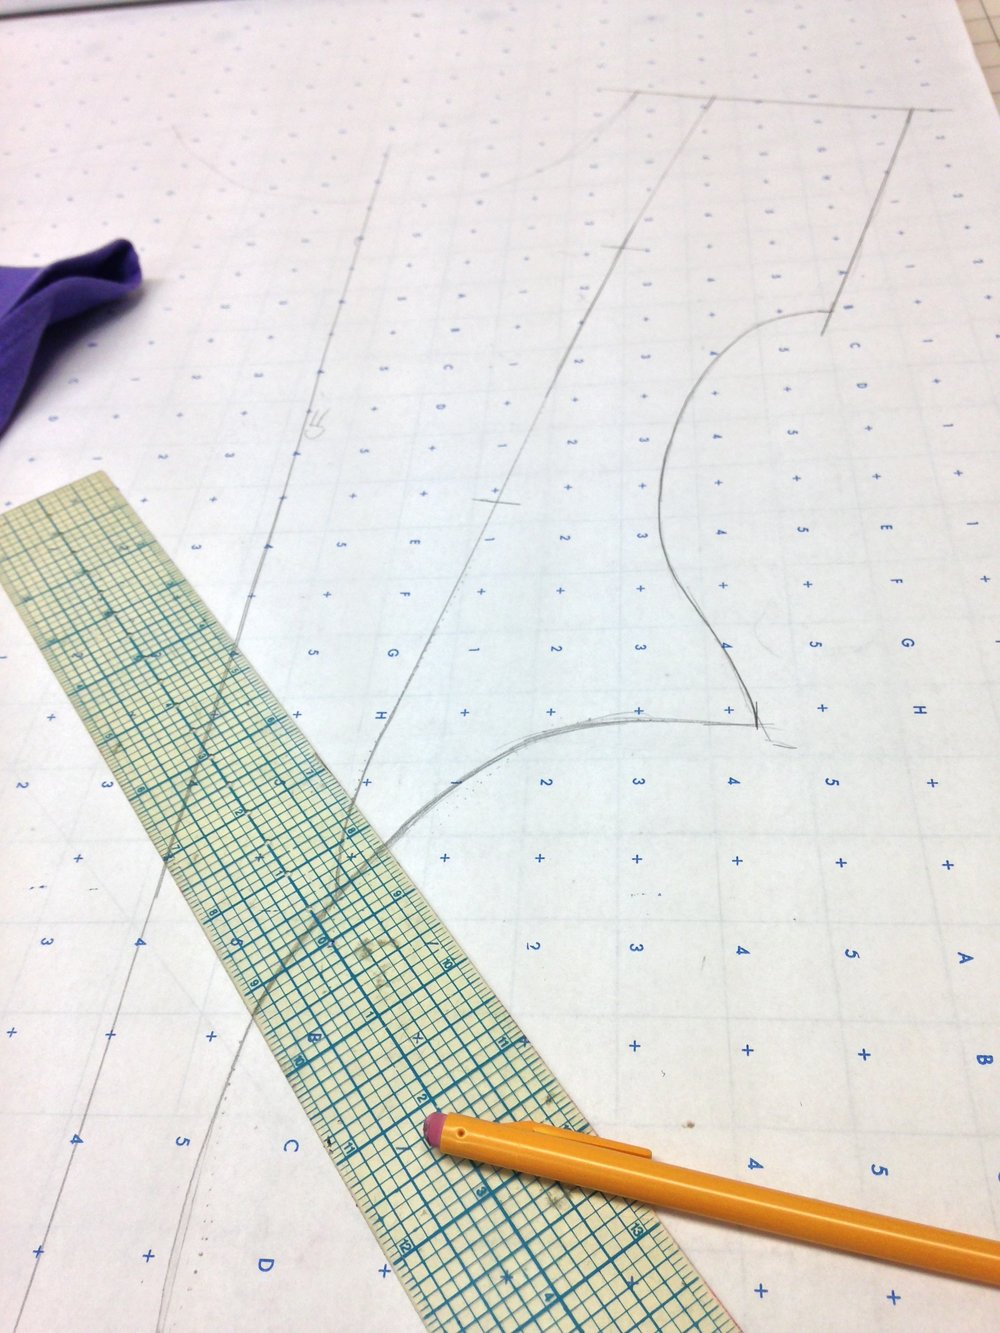 Truing up my pattern trace.